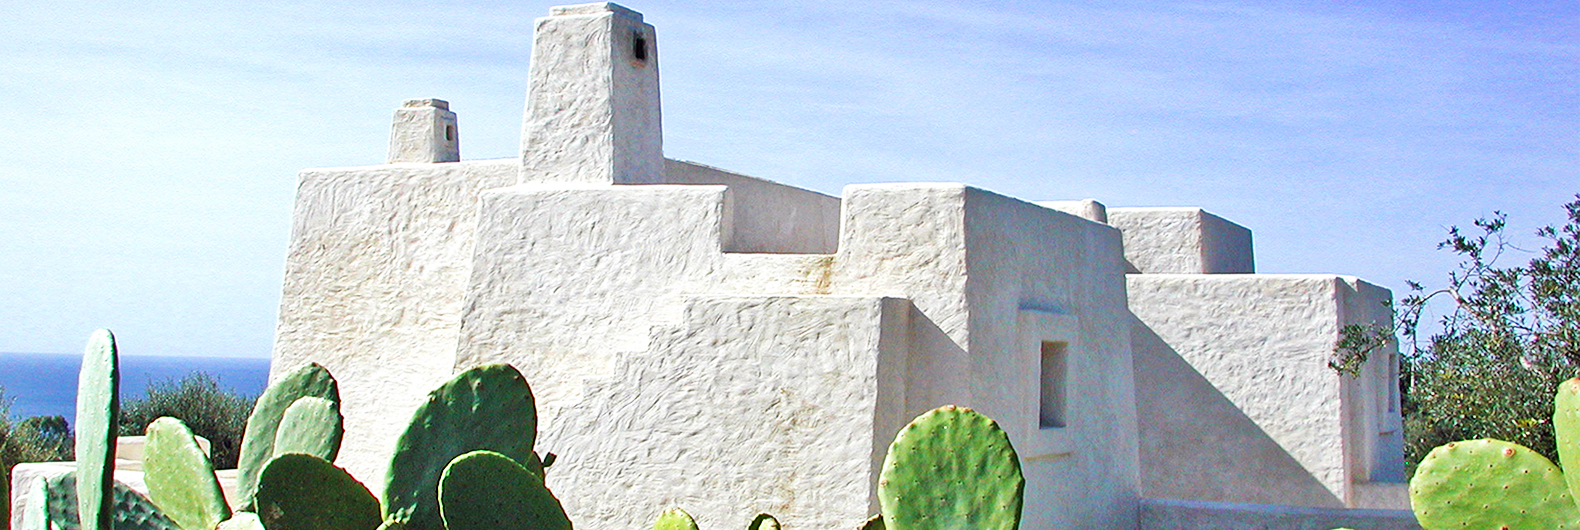 This Sustainable Bioclimatic Home Is Made Of Volcanic Ash And Prickly Pear  Fibers